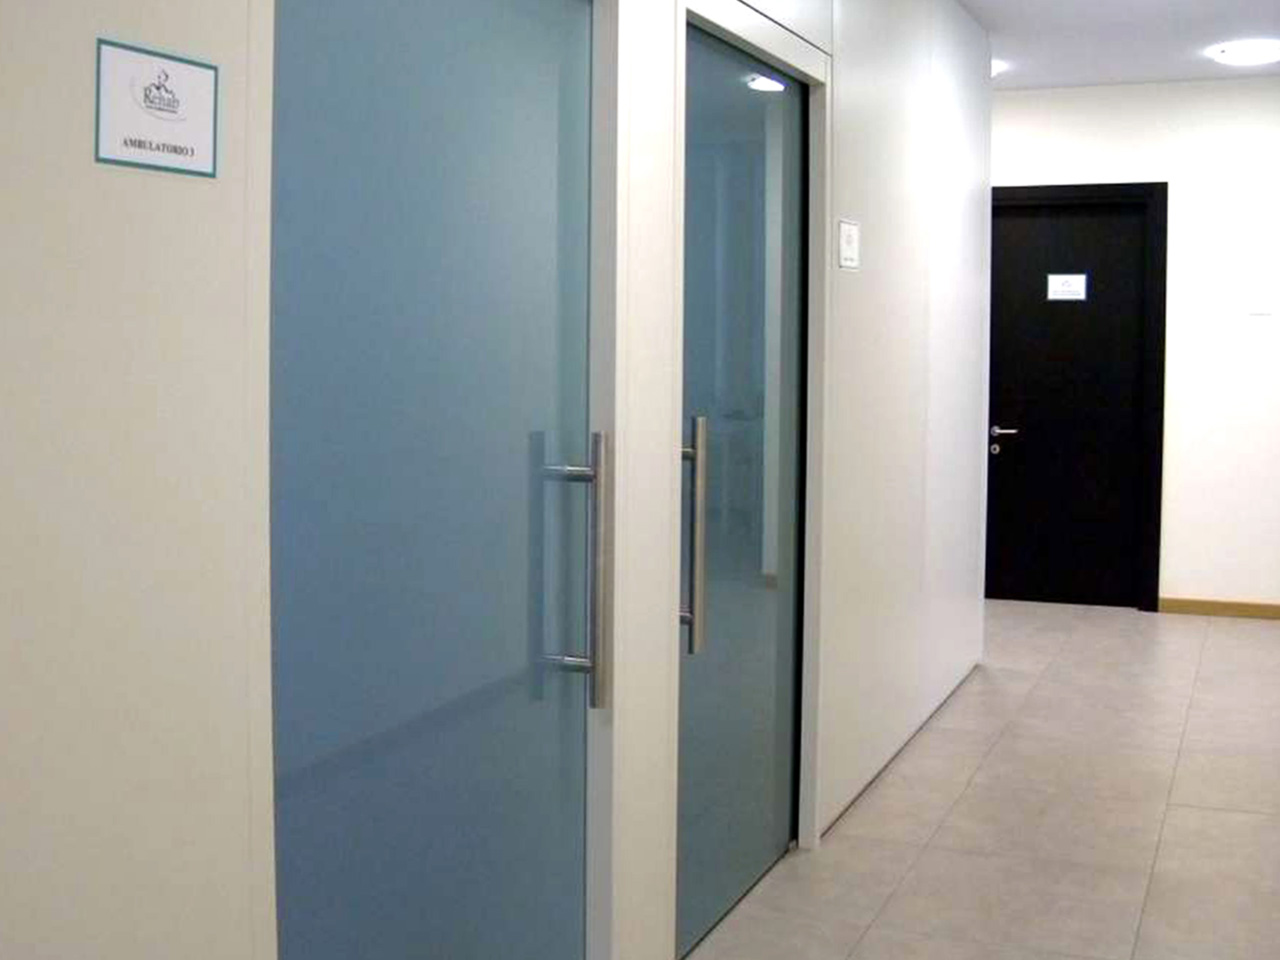 Development of outpatient clinic areas - Verona Italy 02